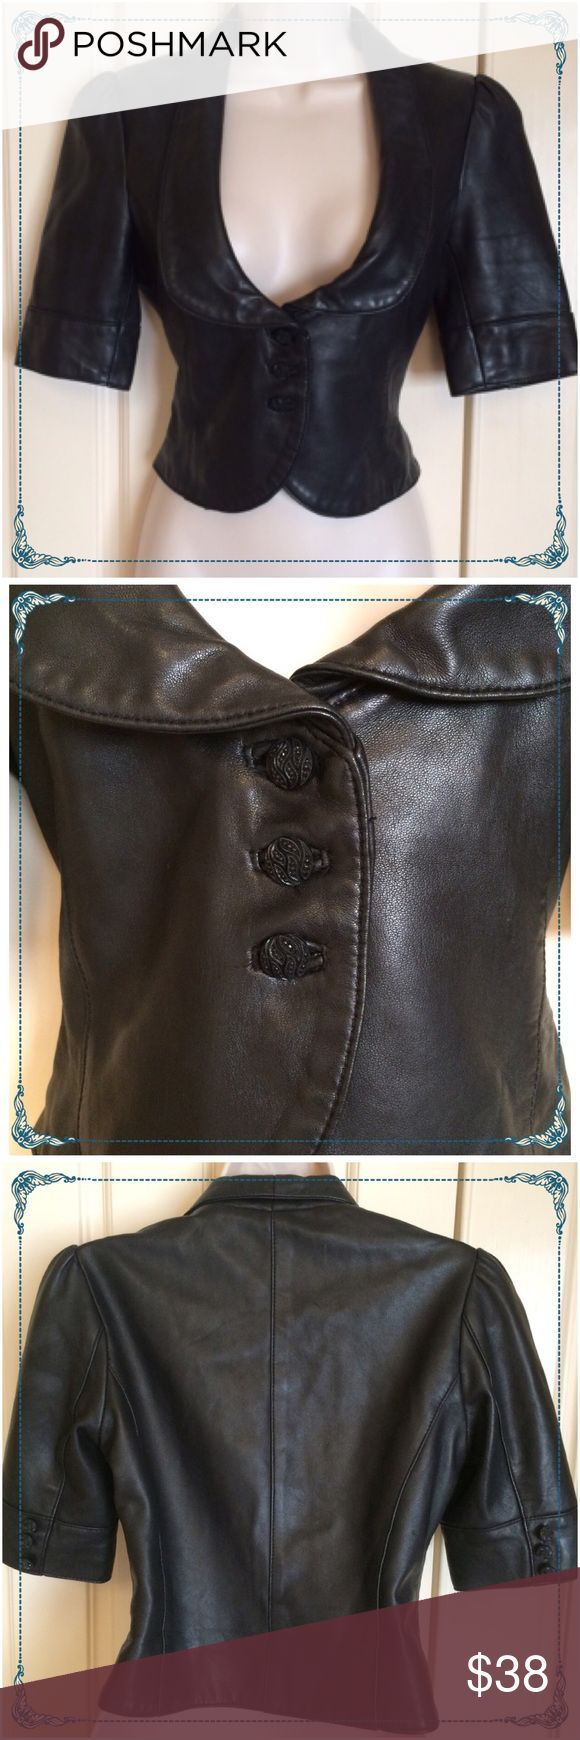 """Plunging leather top steam punk or rocker chique Buttery soft black Marciano plunging neck line genuine leather top. Adorned with jet black braided buttons on the front & the sleeves. An exquisite piece that's  very flattering to your figure. One small scratch on the back of the top but very unnoticeable. Size small. measuring 17""""  long x 27"""" waist  34"""" chest. Marciano Tops"""